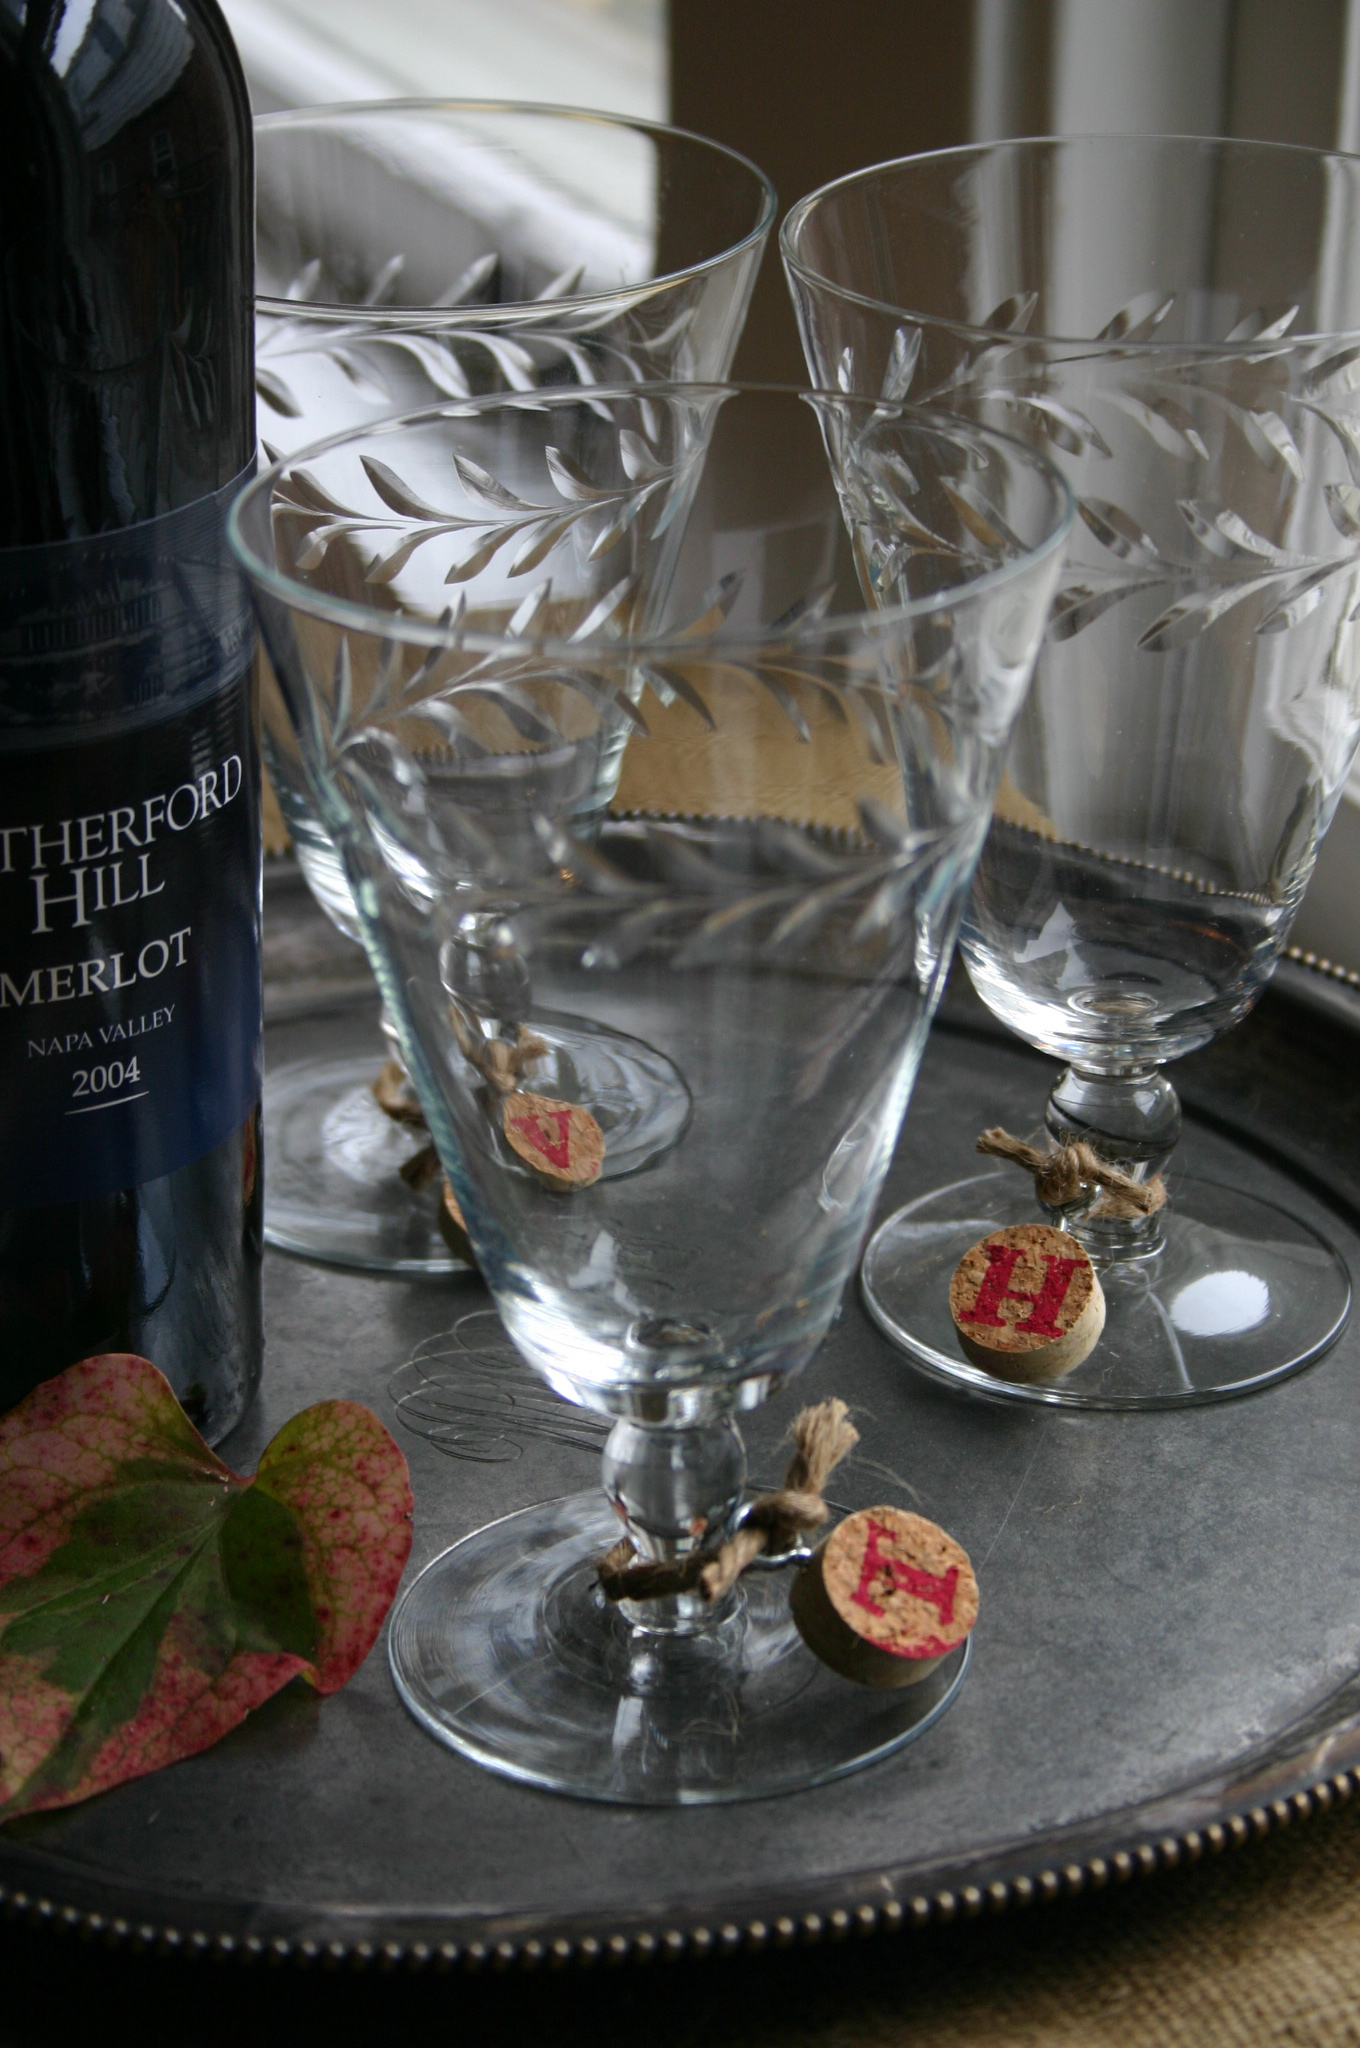 Wine corks, cut into half inch thick discs and rubberstamped with a letter are attached to the stem of a wine glass with jute.